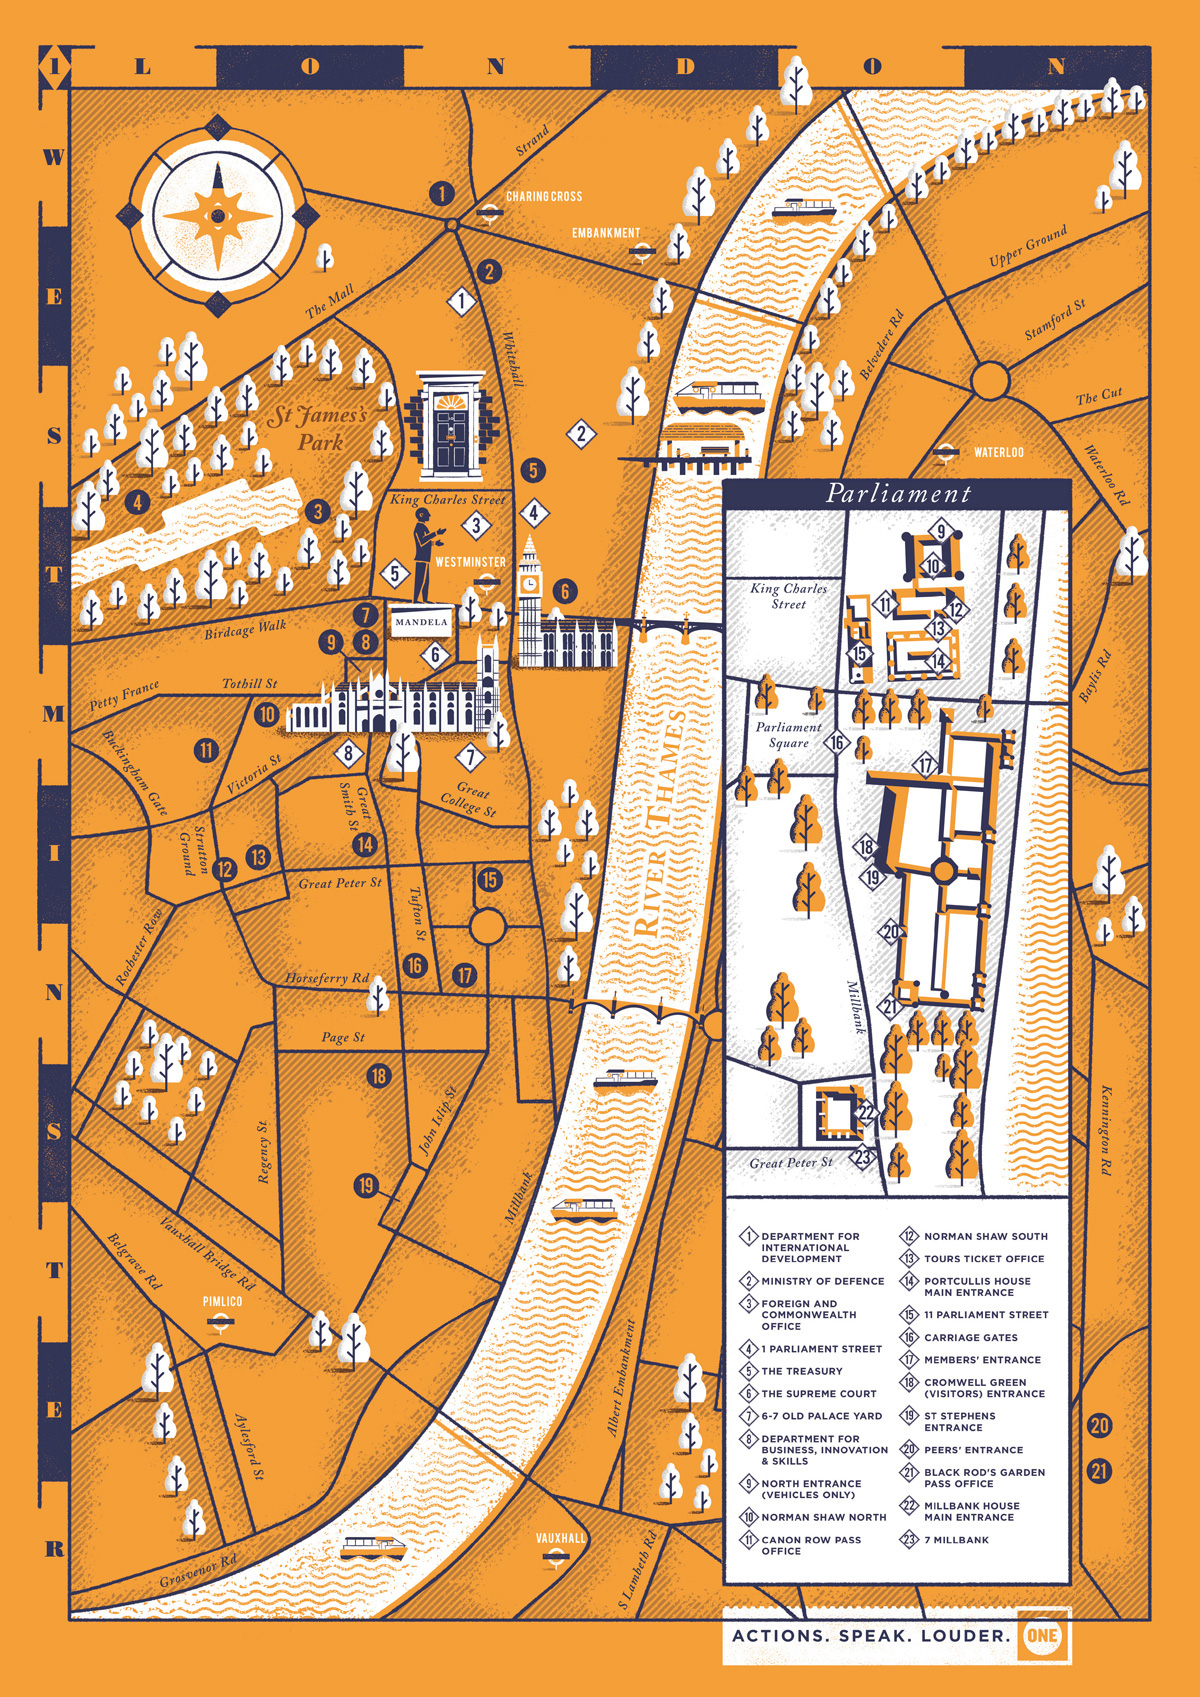 ONE Westminster Map Herb Lester Associates on Behance